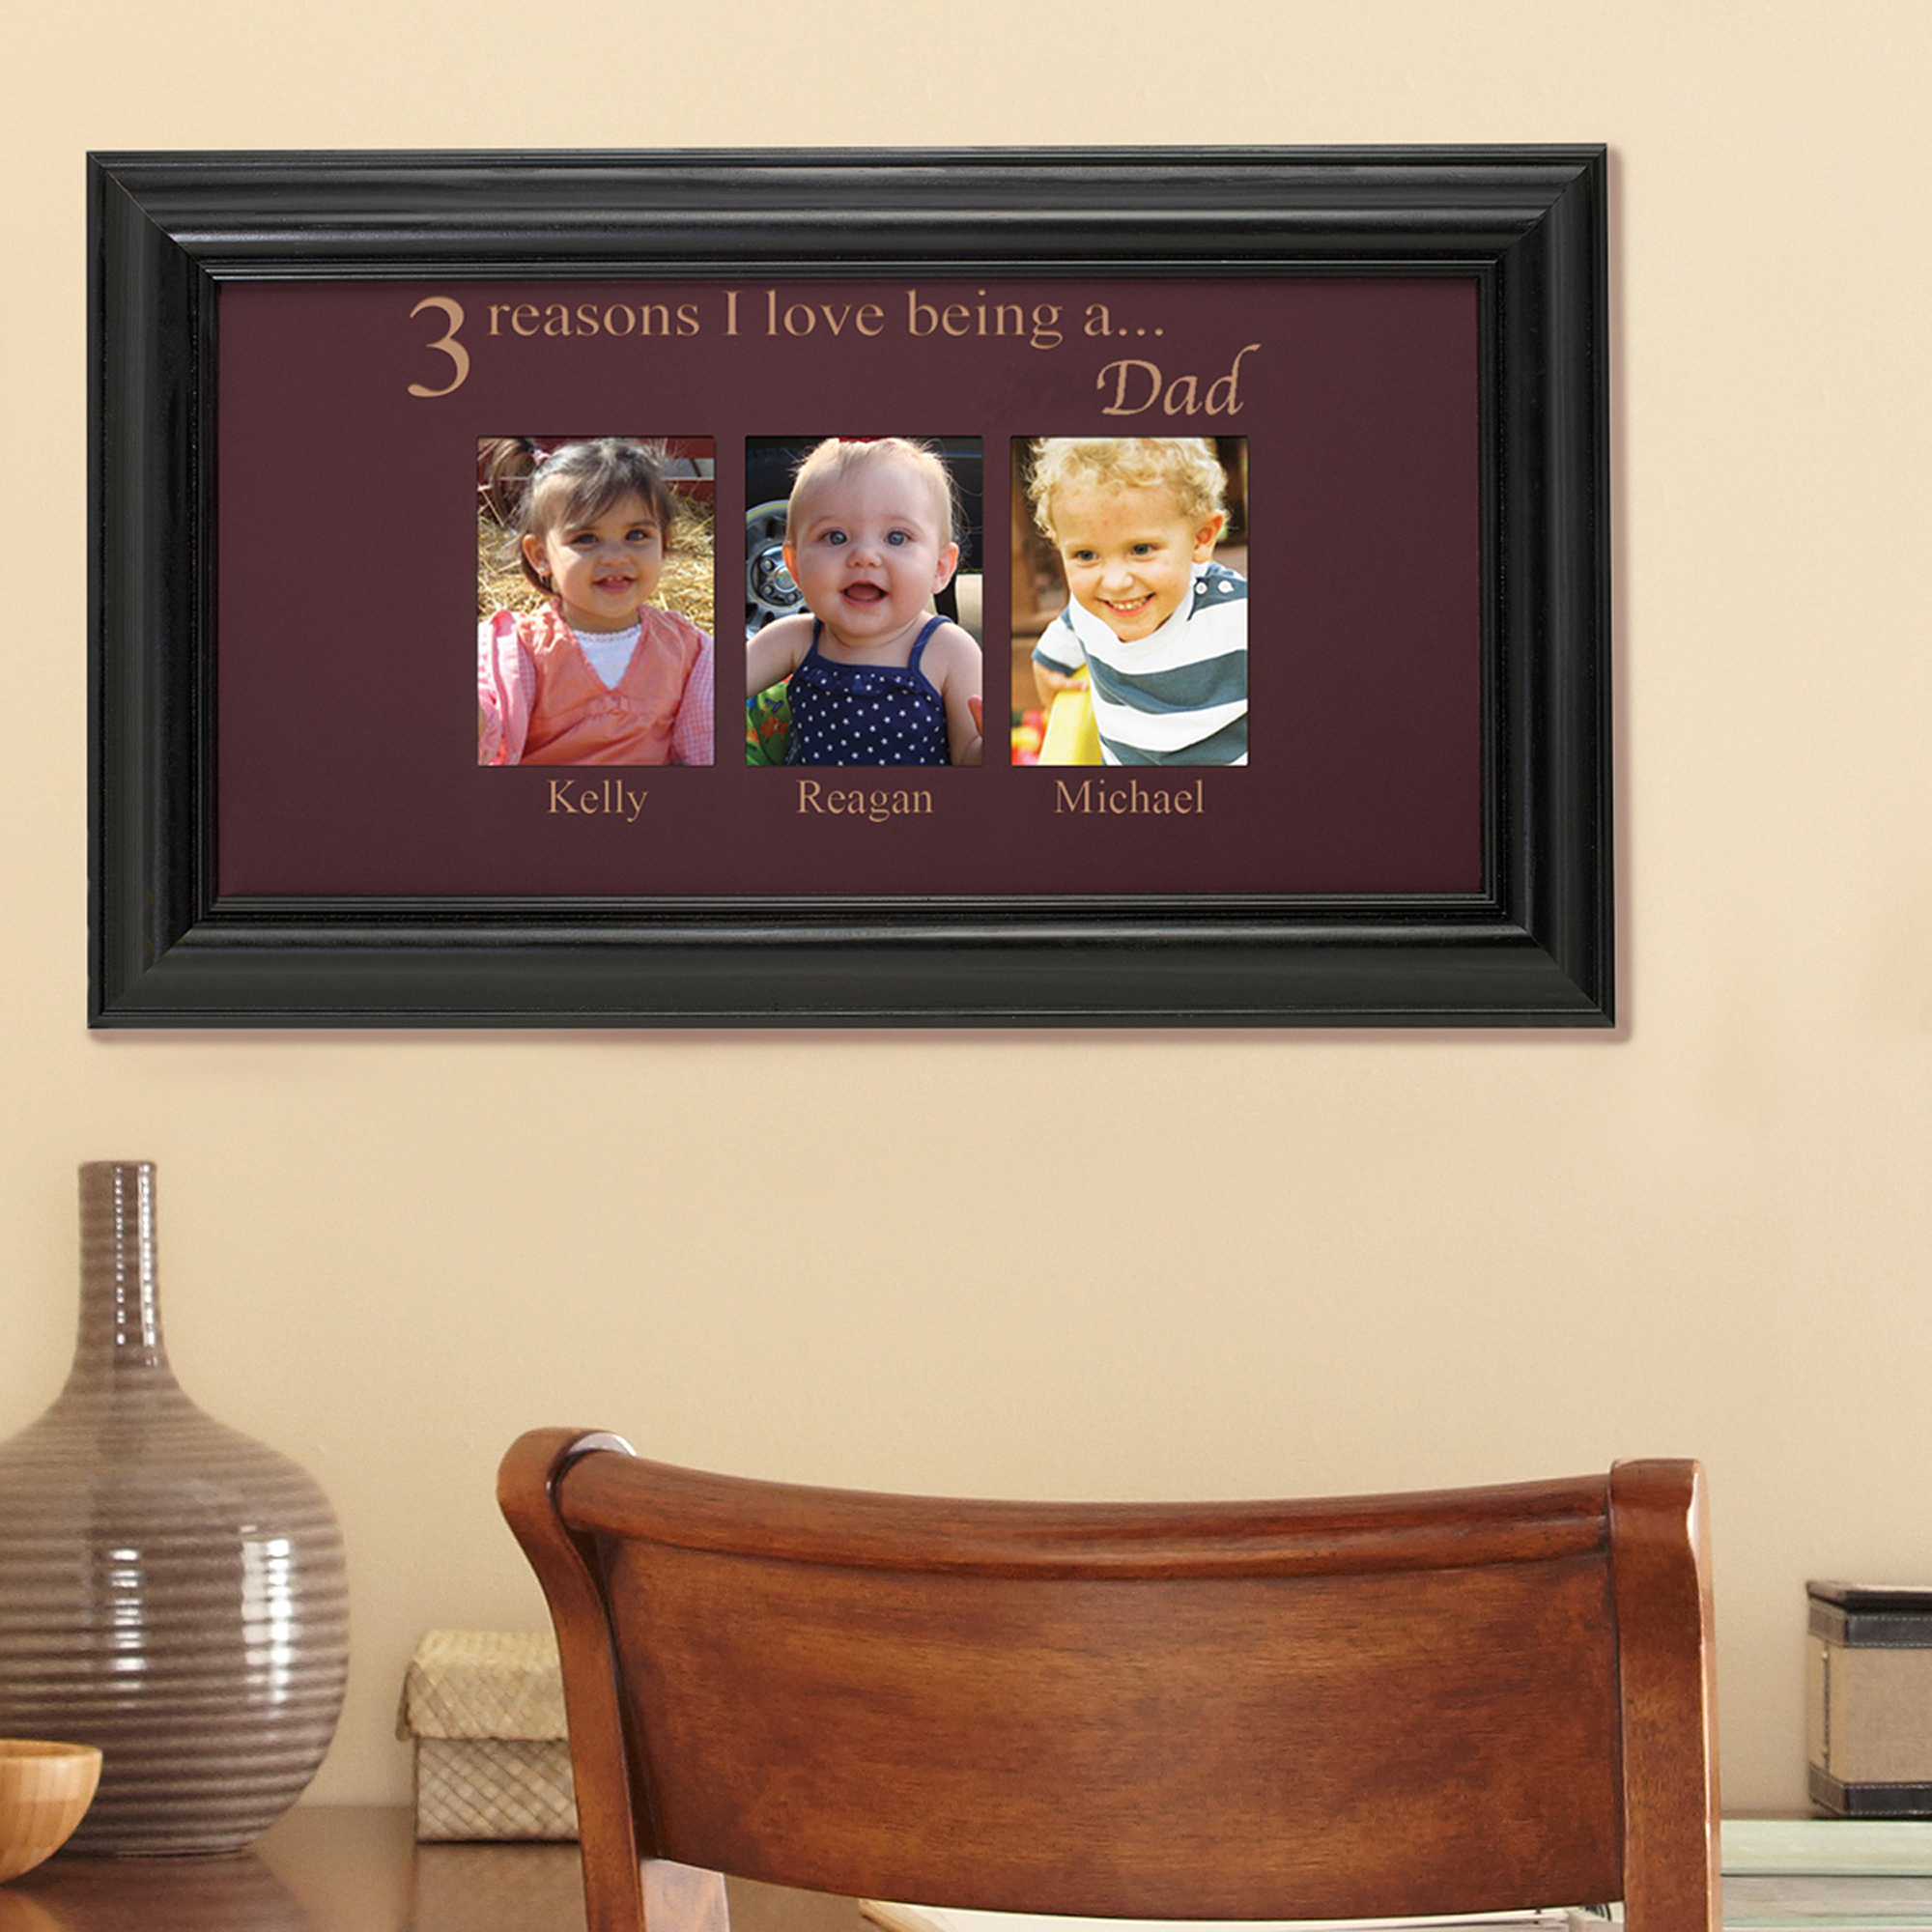 Personalized Reasons I Love Photo Frame, Two Photos - Walmart.com